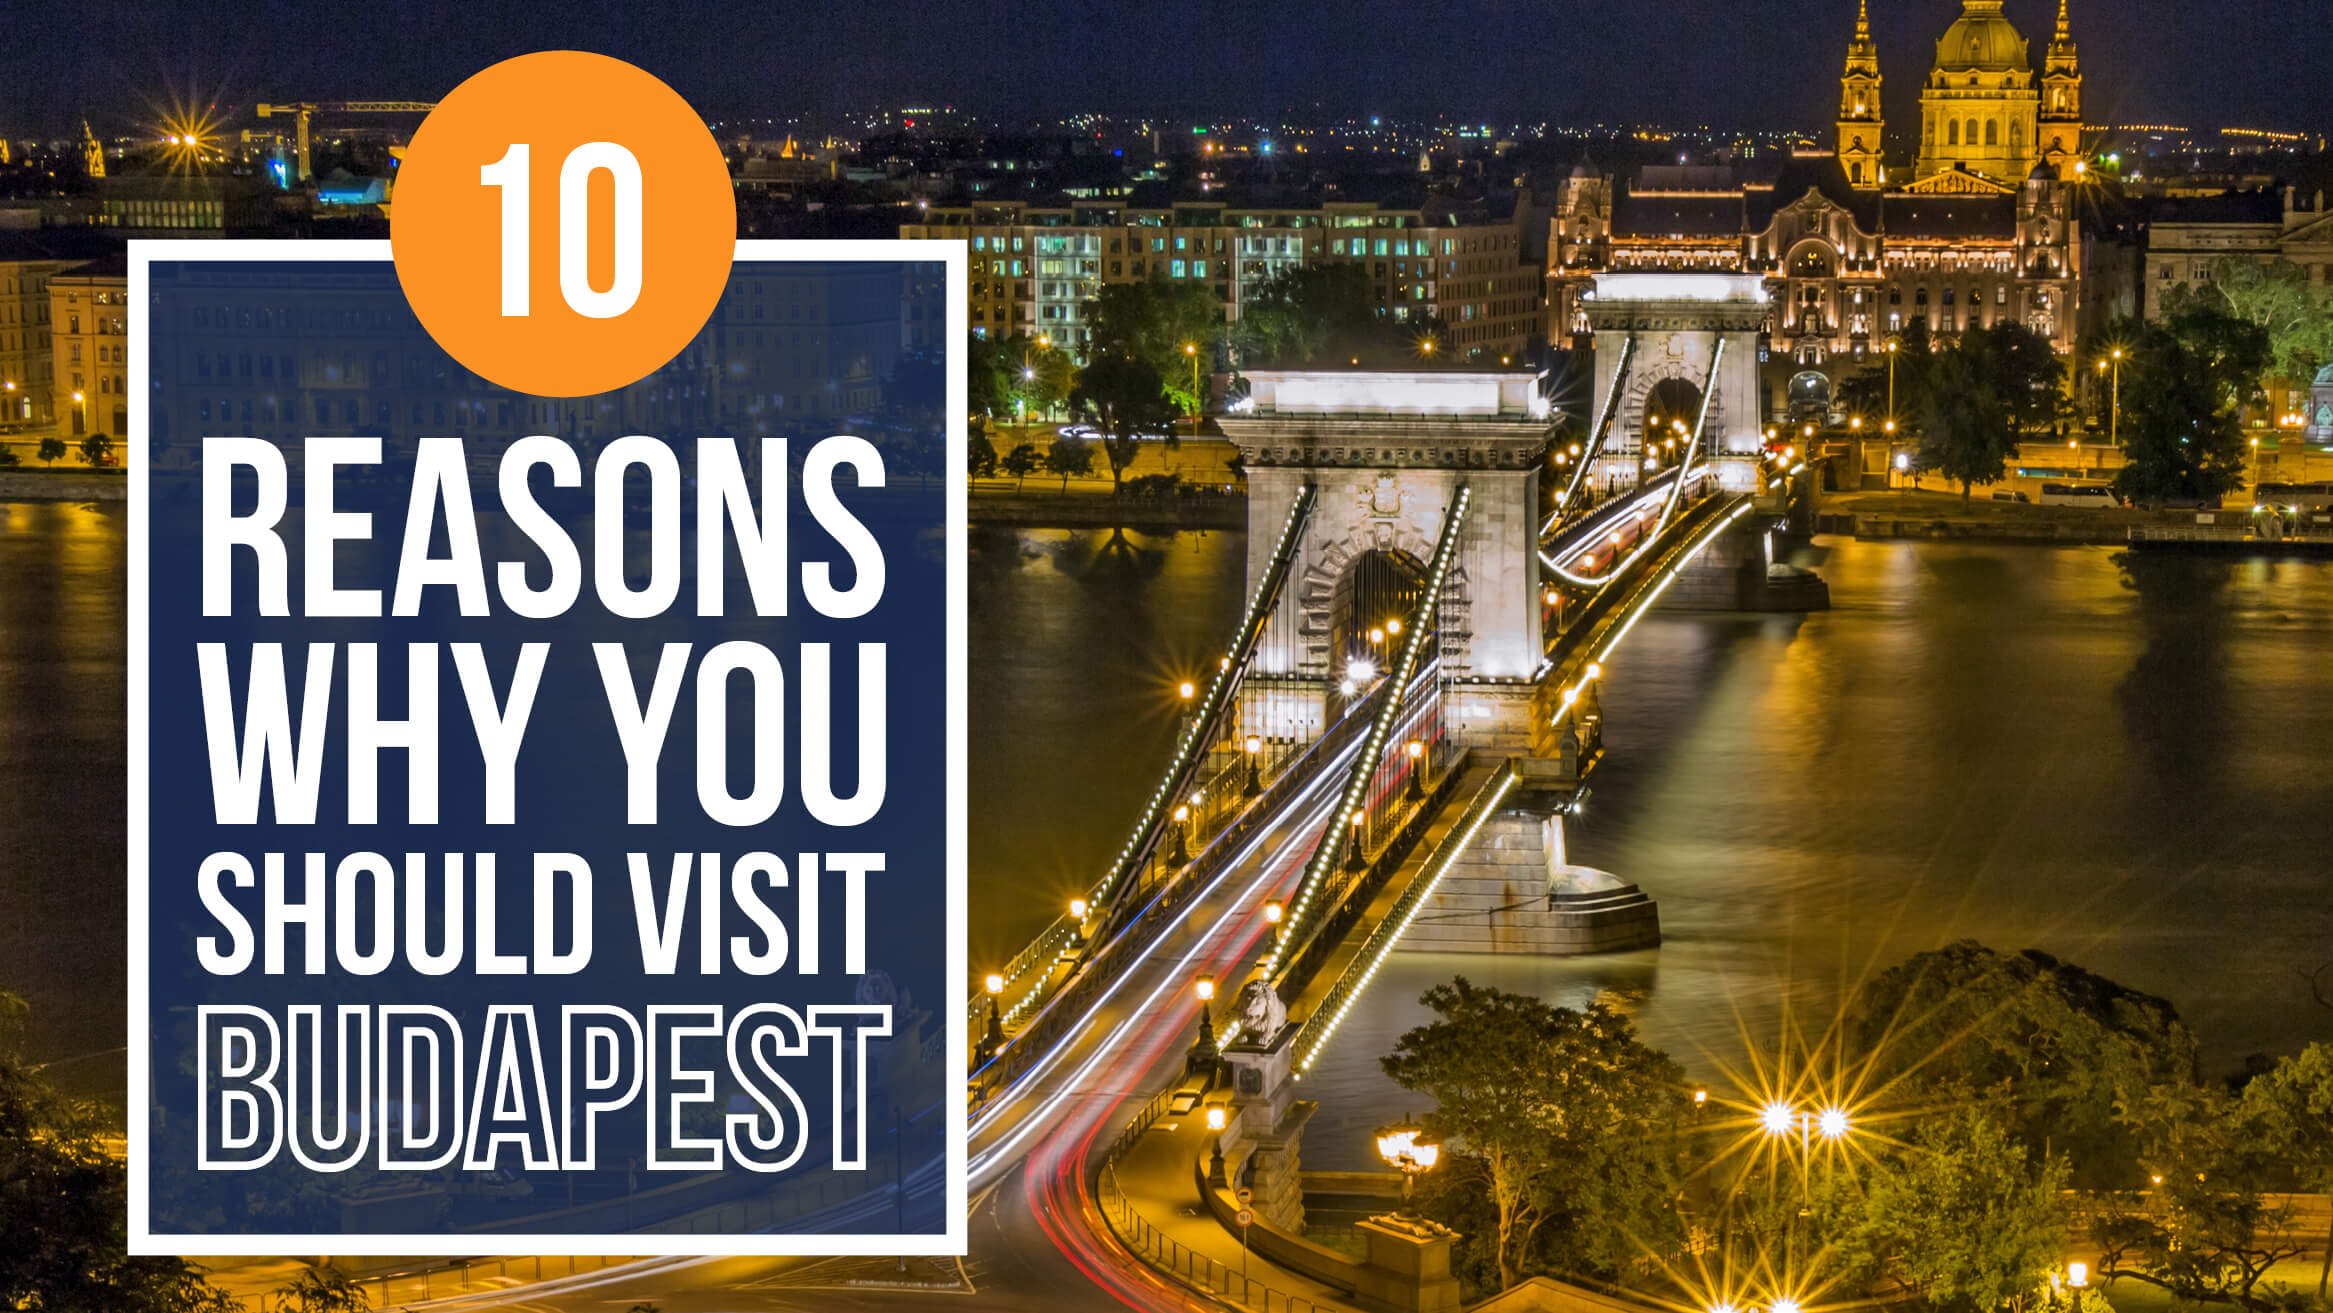 10 Reasons Why You Should Visit Budapest header